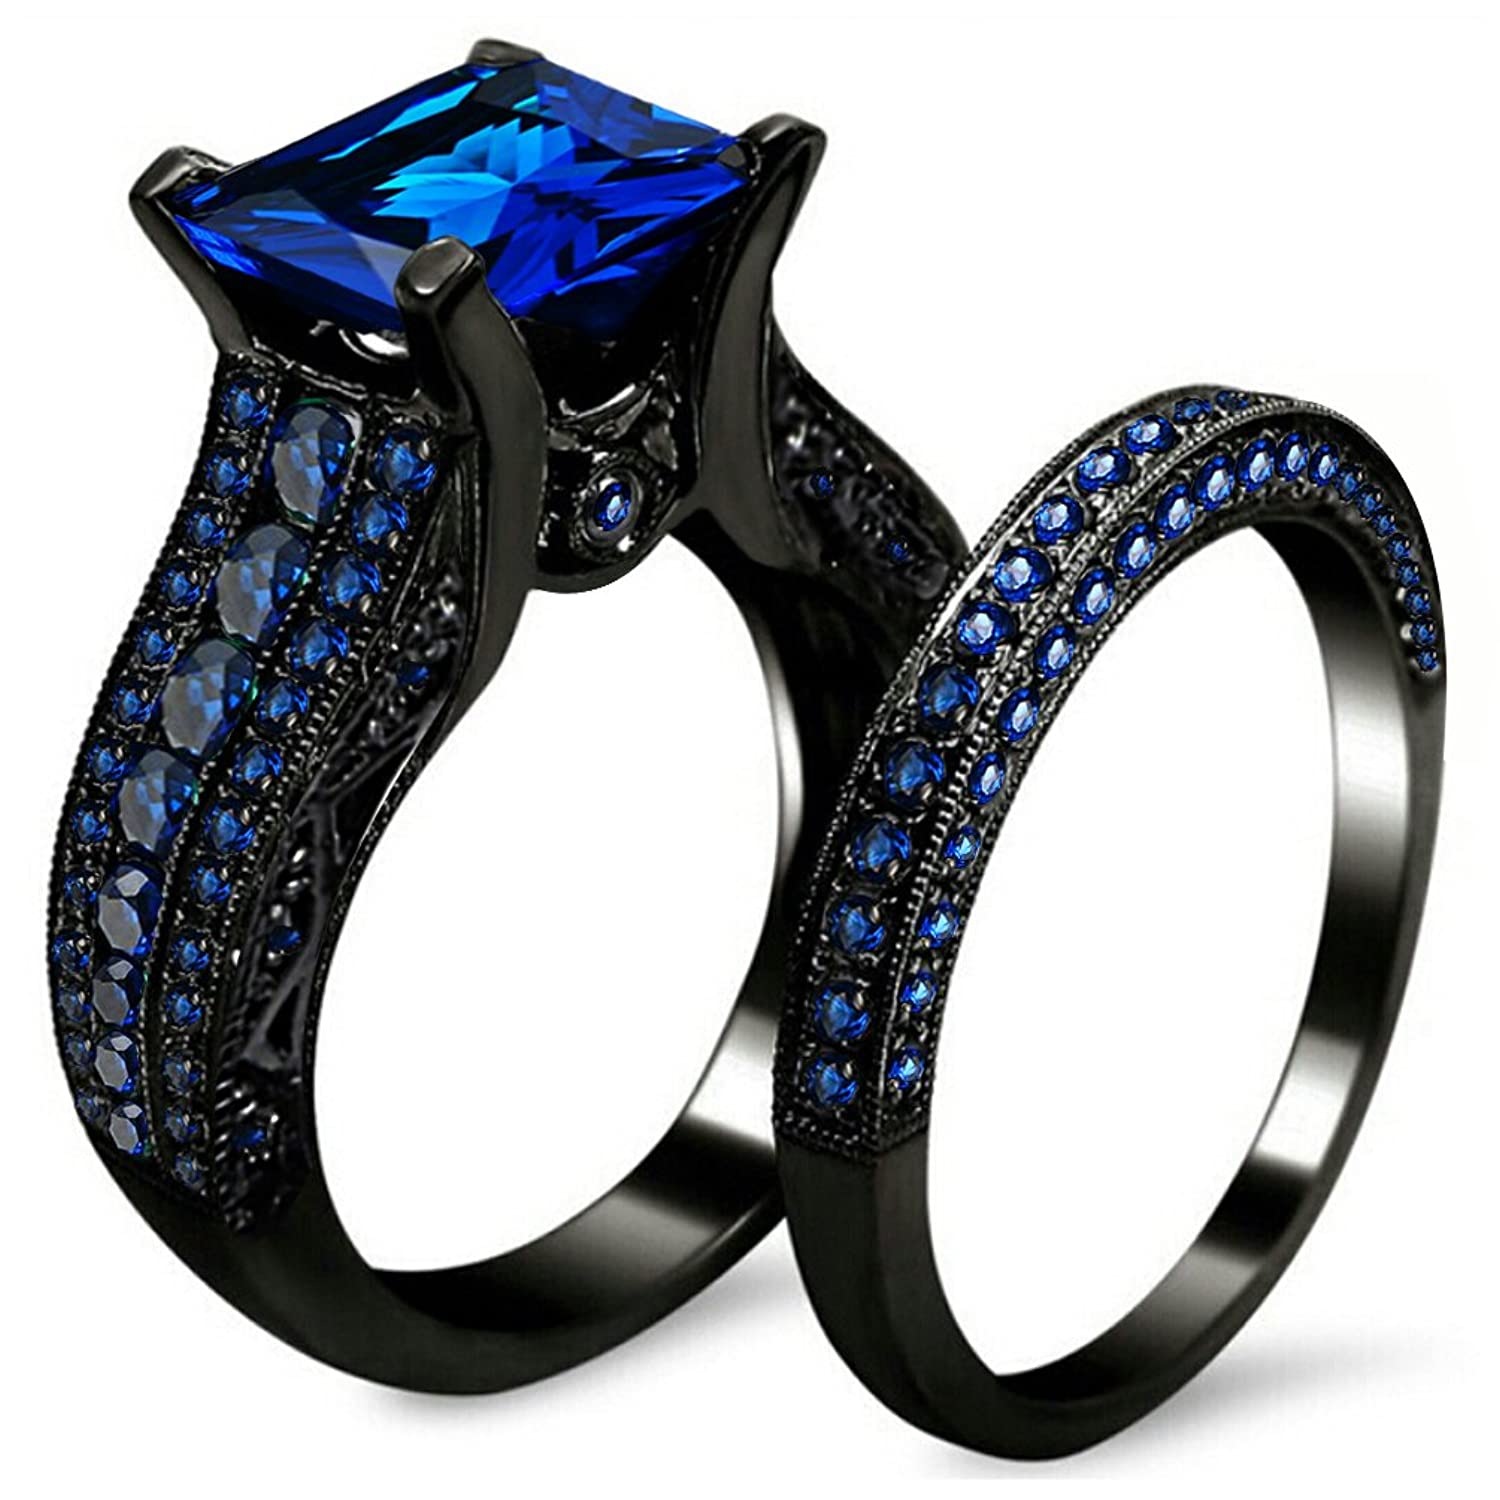 en royal jewellery lr webrend s blue jewels sotheby magnificent rings auctions